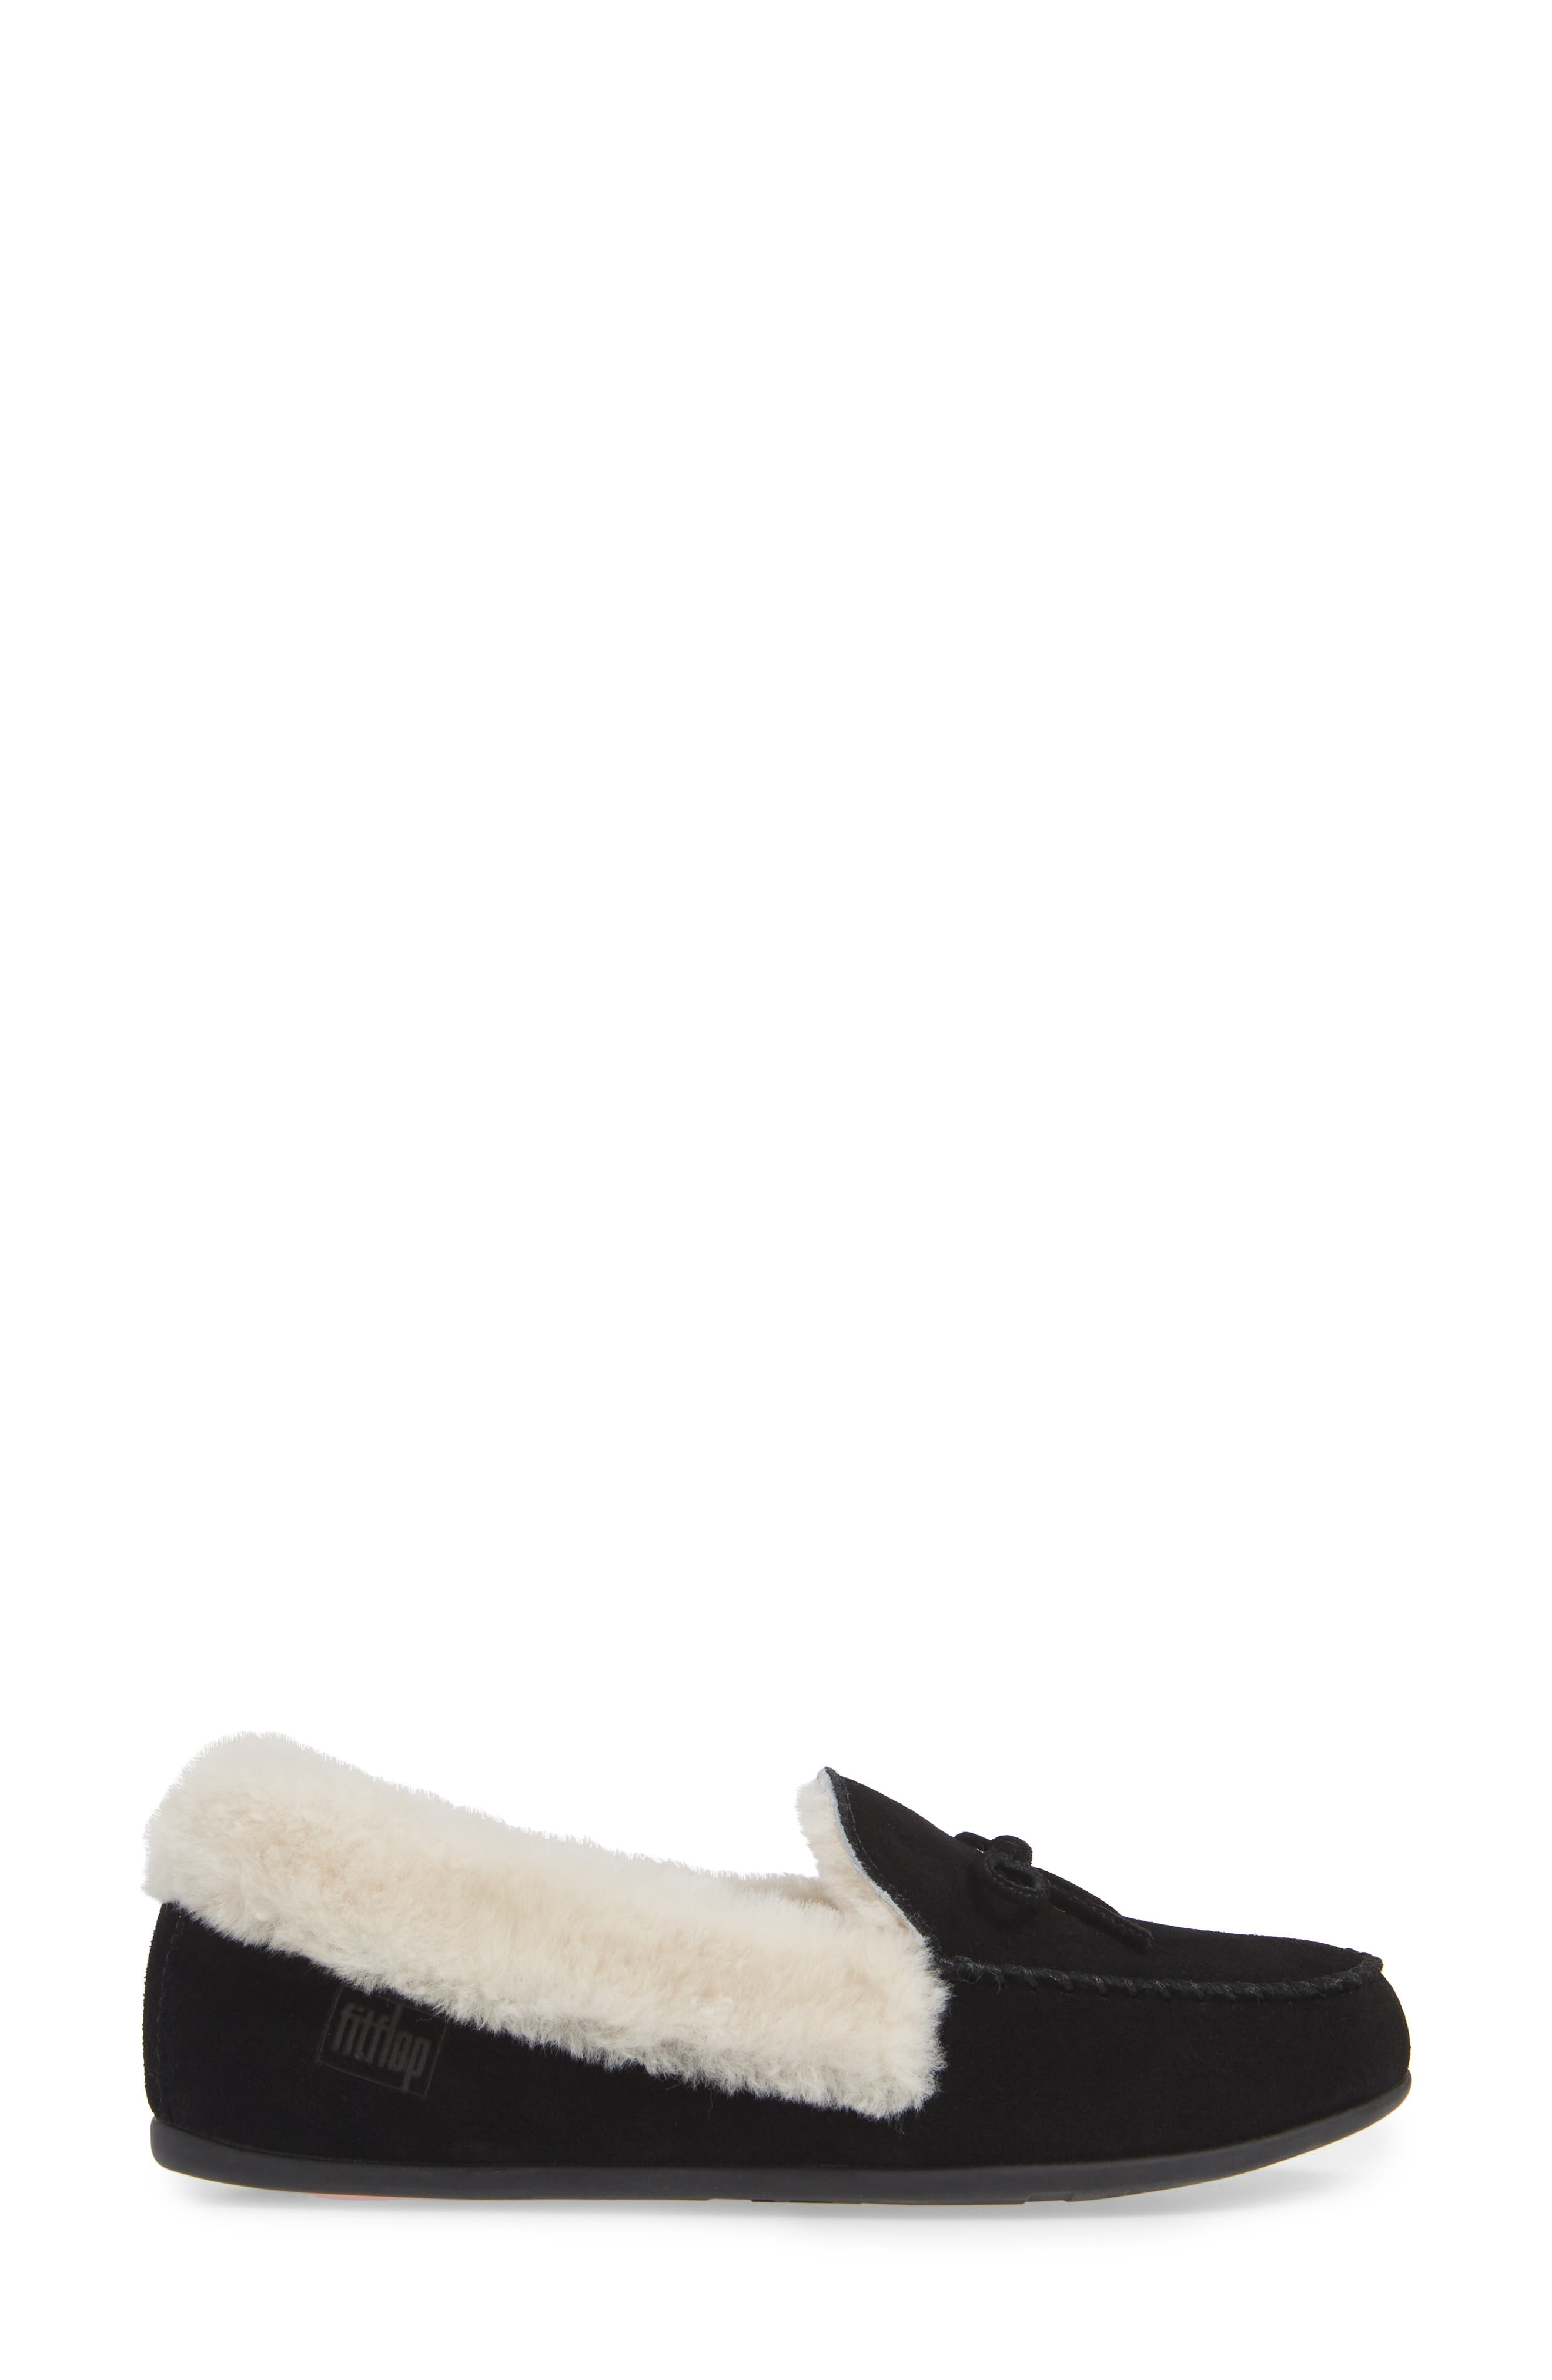 Clara Genuine Shearling Lined Moccasin,                             Alternate thumbnail 3, color,                             BLACK SUEDE